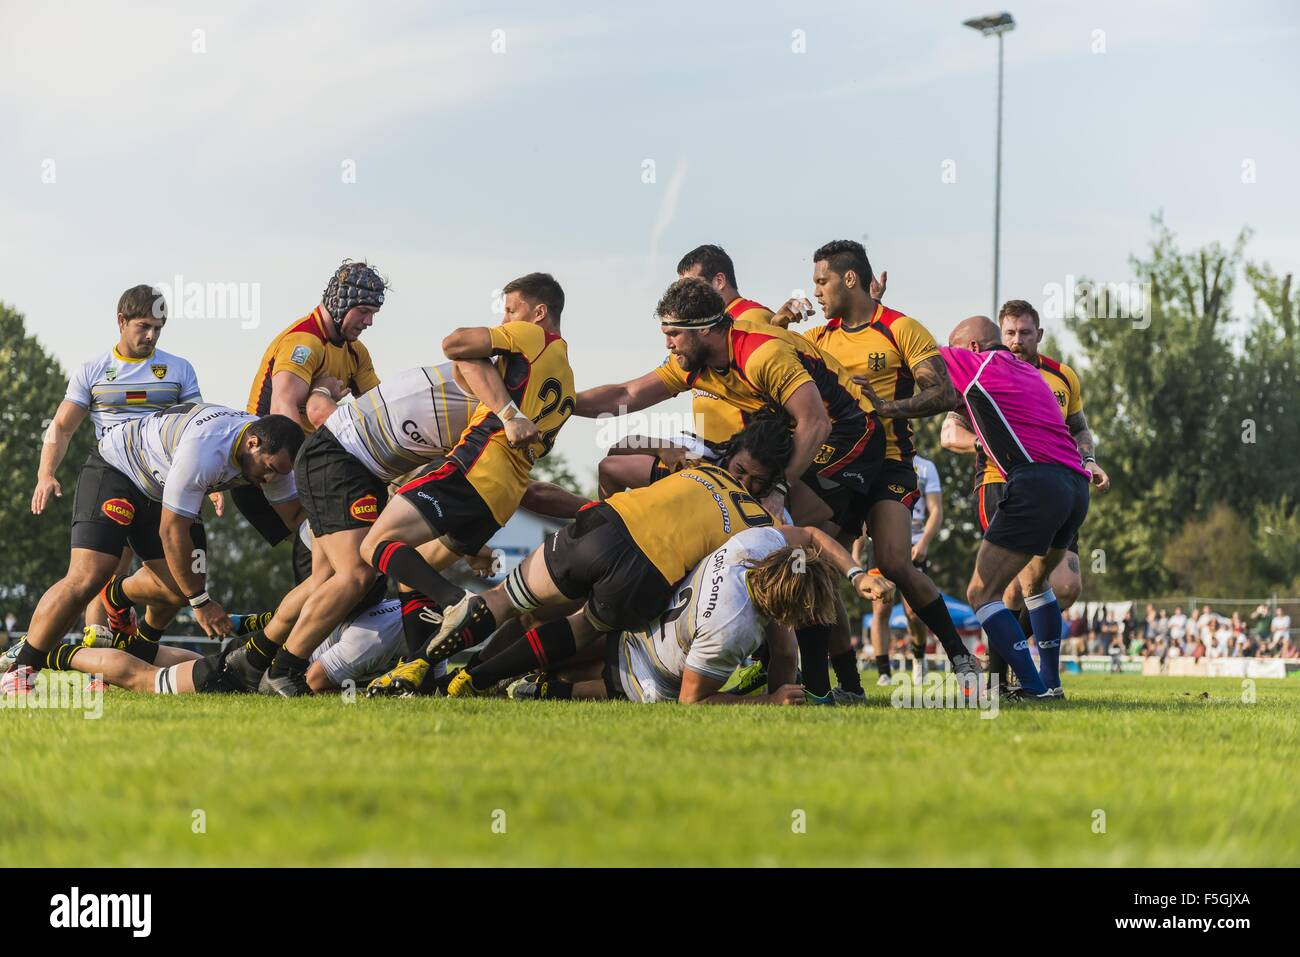 Tackling and ruck, friendly rugby match, Germany against La Rochelle, Fritz-Grunebaum-Sportpark, Heidelberg, Baden - Stock Image